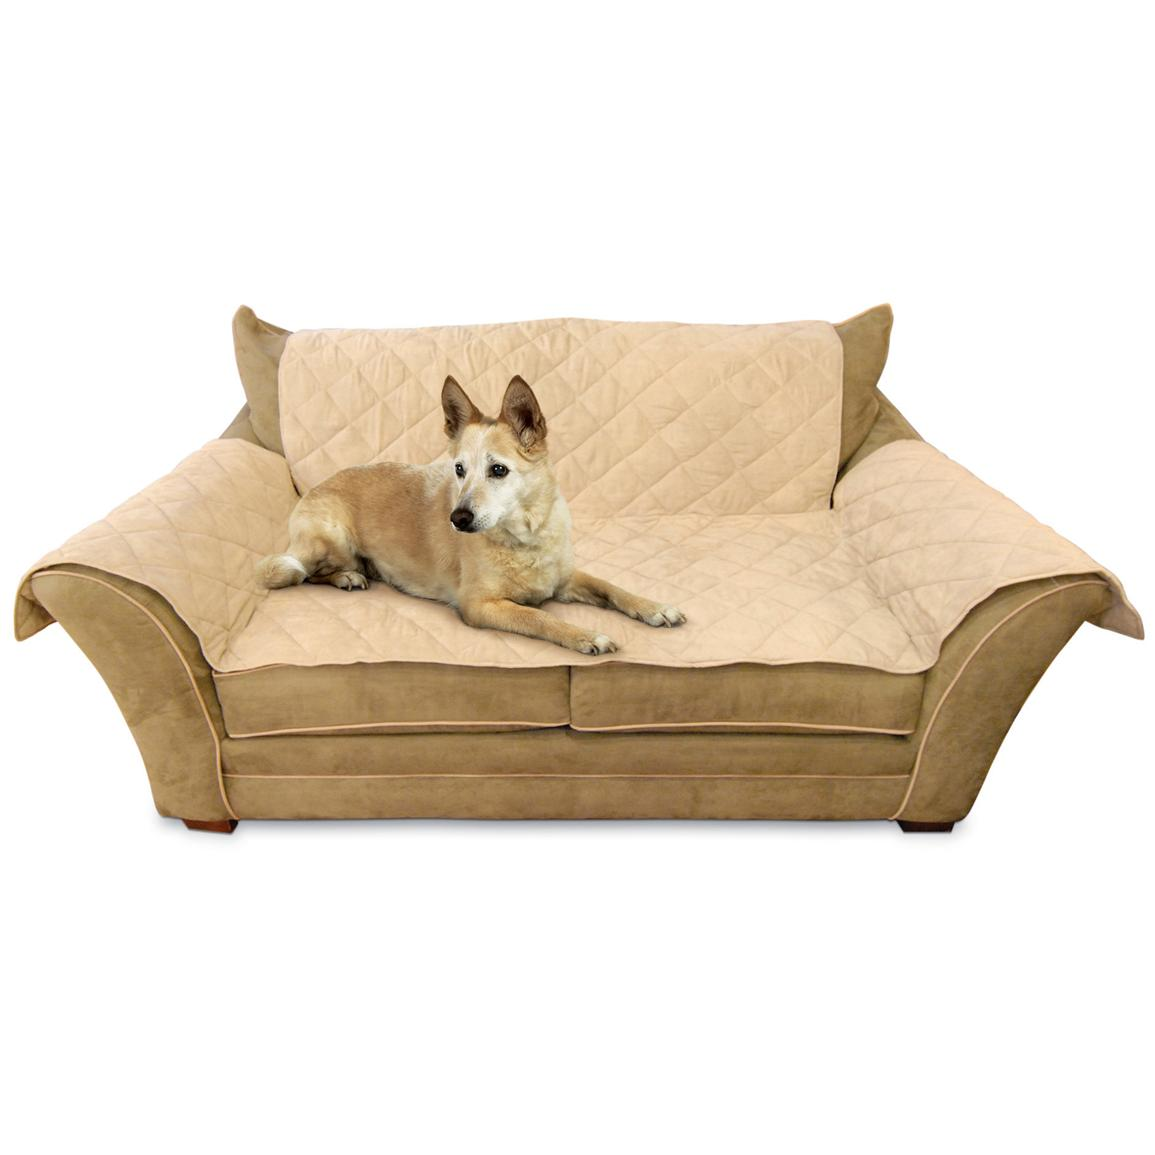 K&H Pet Products Furniture Cover™, Tan - Loveseat